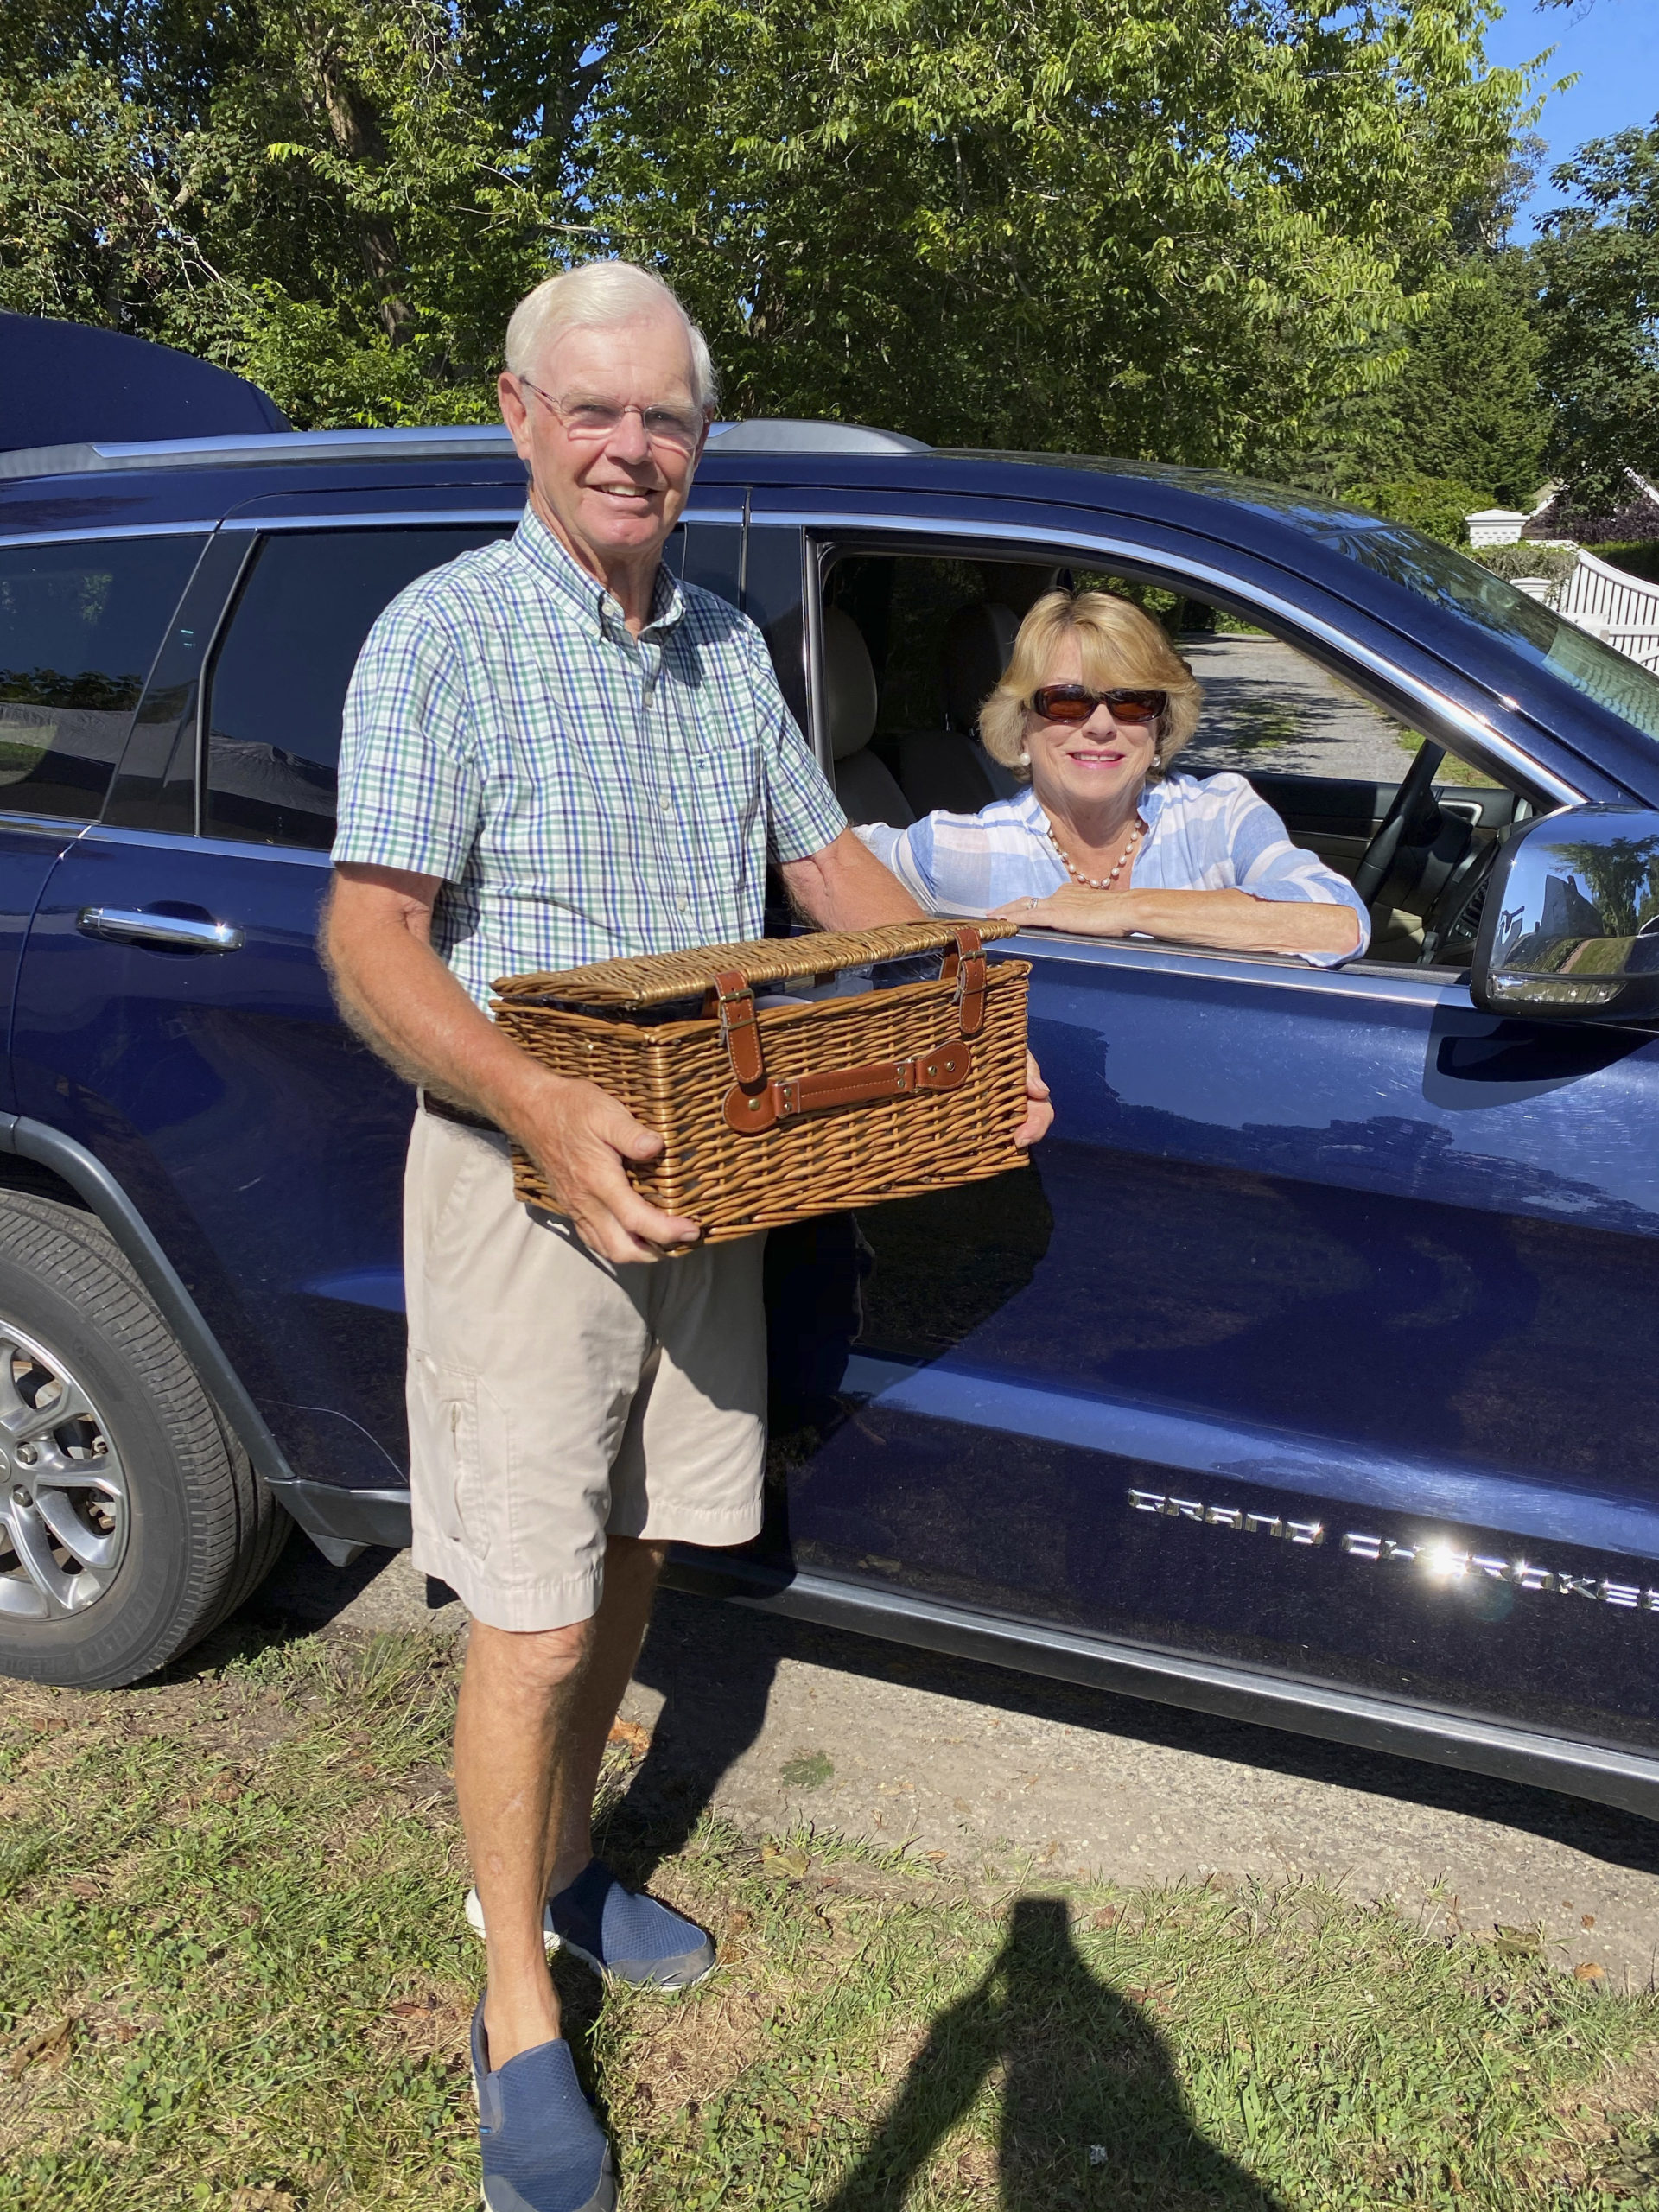 Bob and Linda Beck at the Halsey House Picnic Basket event on Saturday.